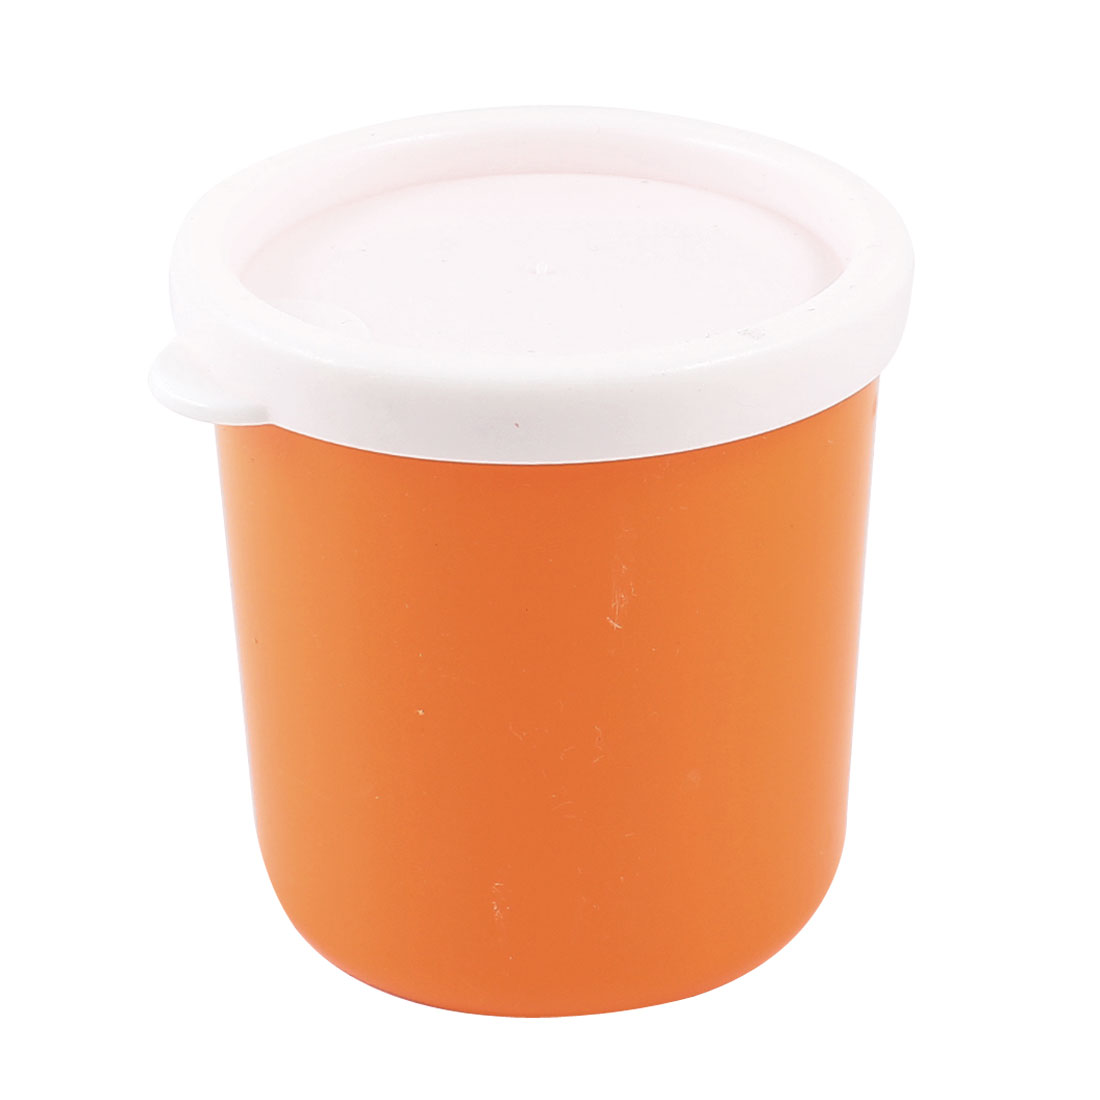 Home Office Orange Plastic Nonslip 210ml Water Drinking Cup Mug w Lid